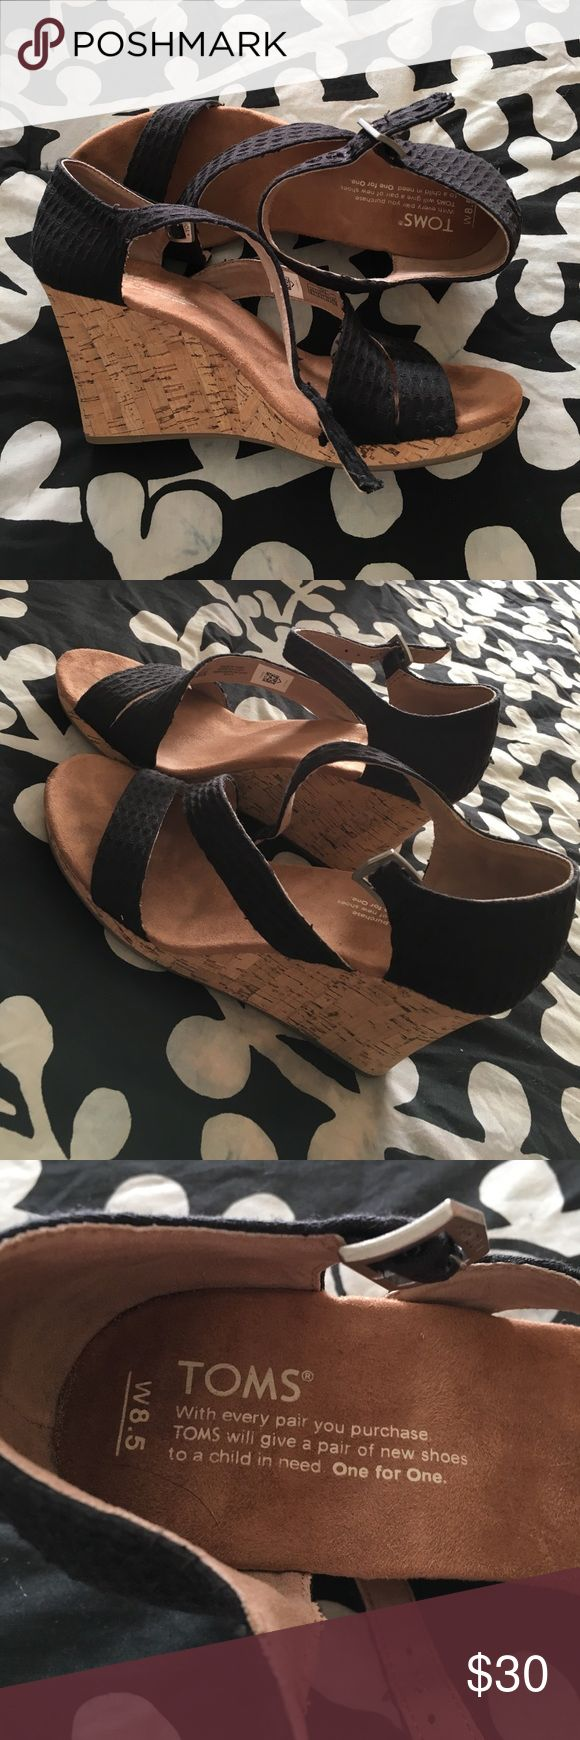 Toms wedges Black and cork Toms wedge sandals. Size 8.5. Worn maybe three times. Toms Shoes Sandals